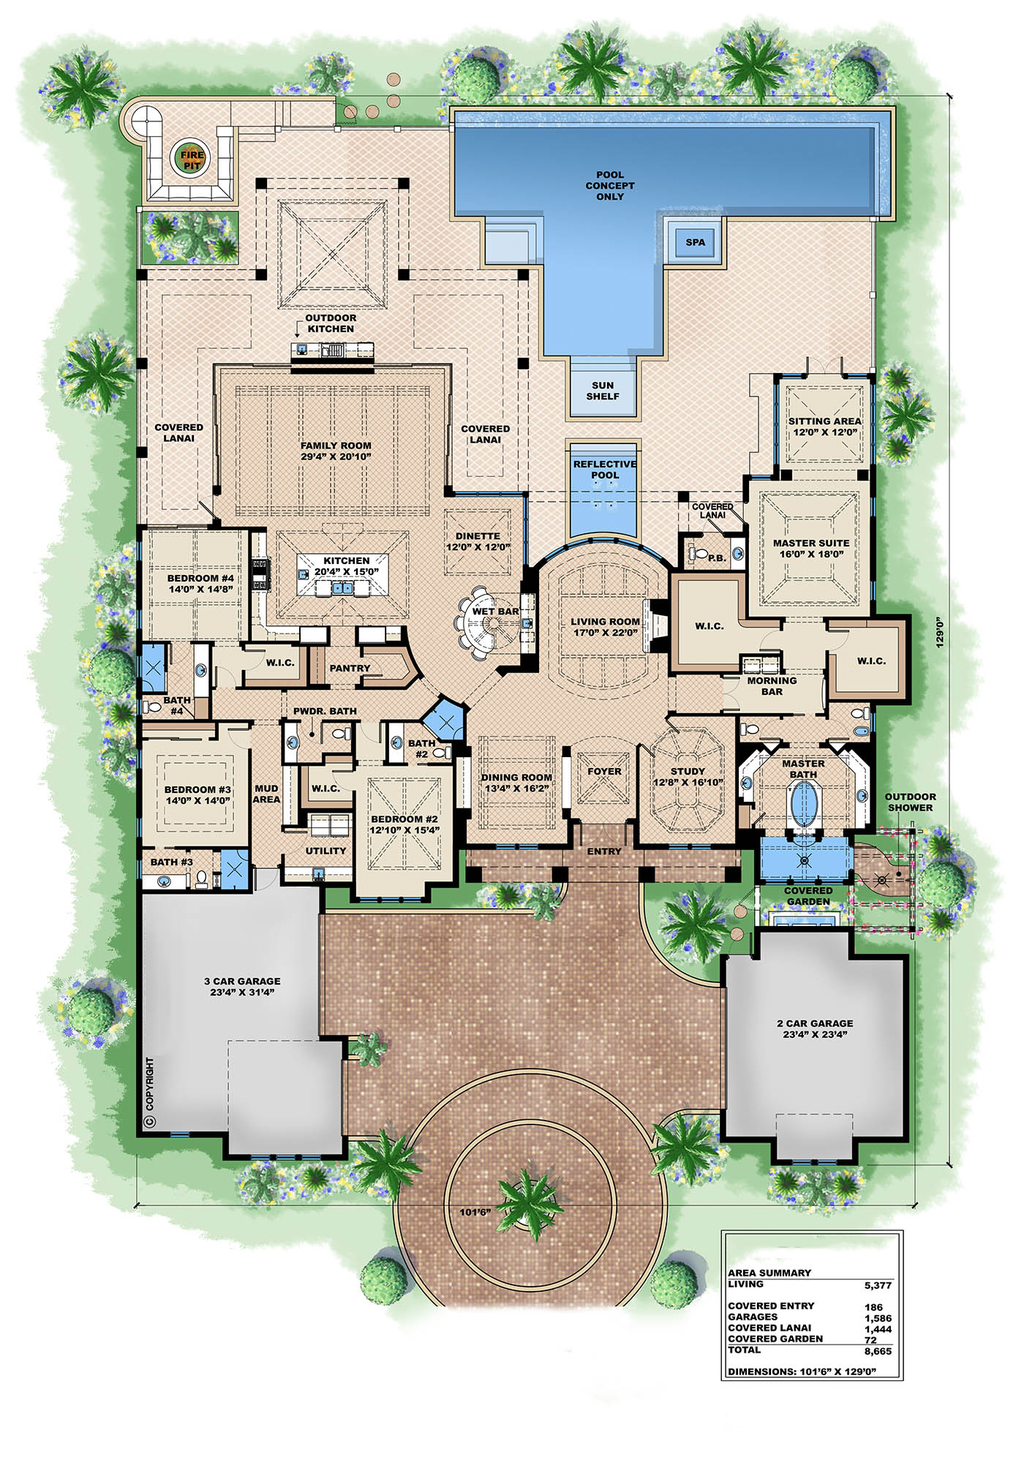 European style house plan 4 beds baths 8665 sq ft for European style house plans